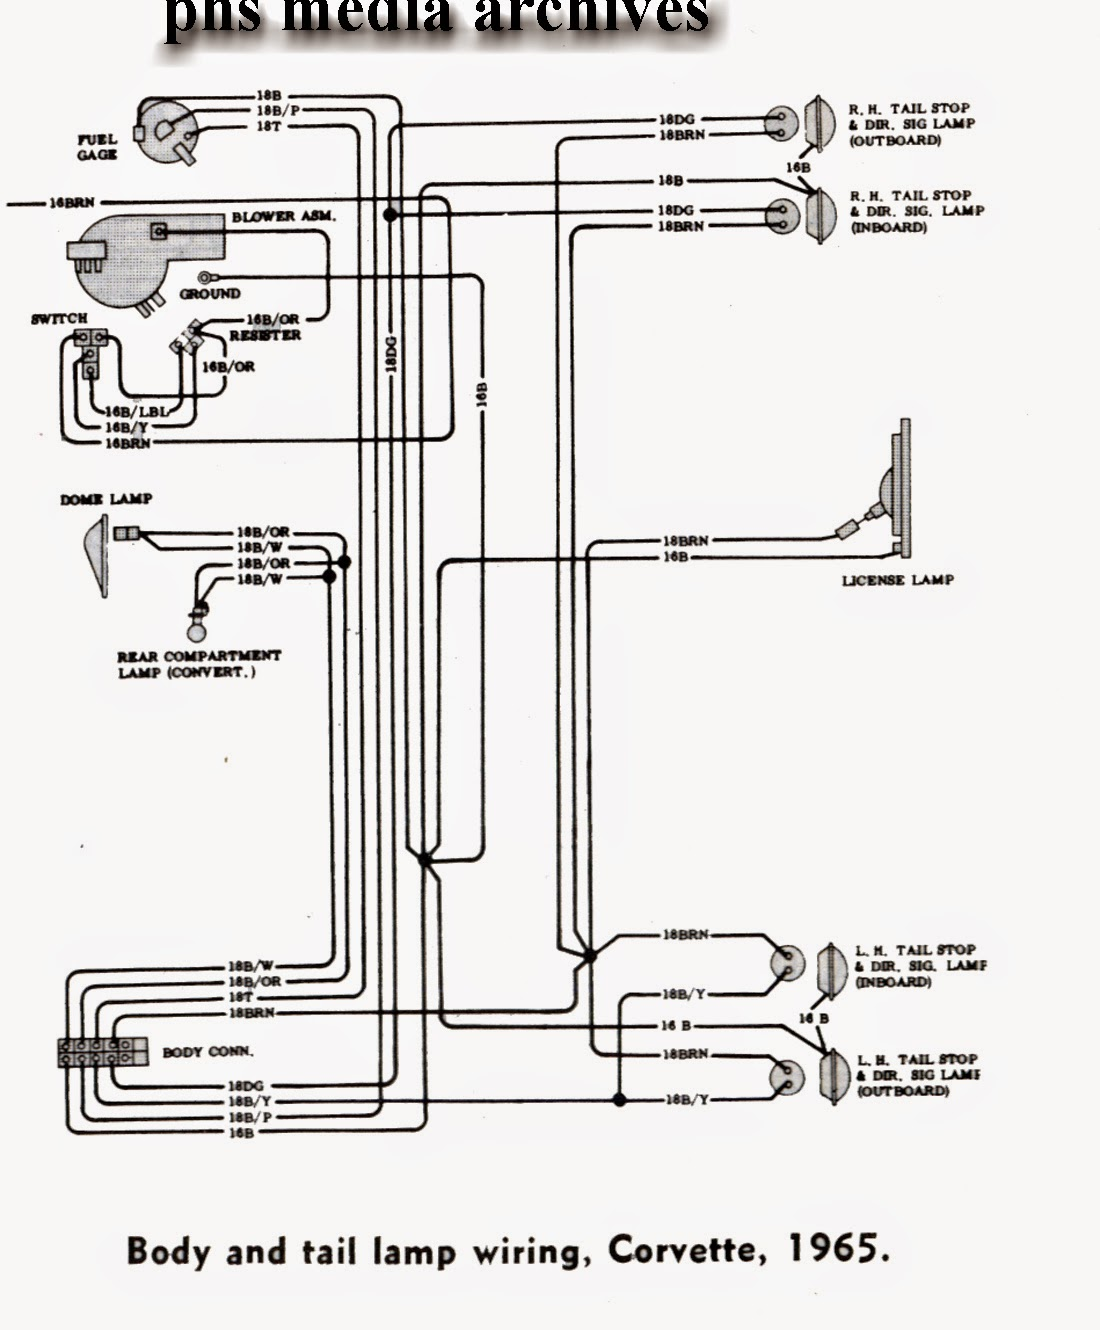 Ford Fleet Wiring Diagrams Diagram For Pollak 12 705 Flex Fuse Switch F Panel Enthusiast